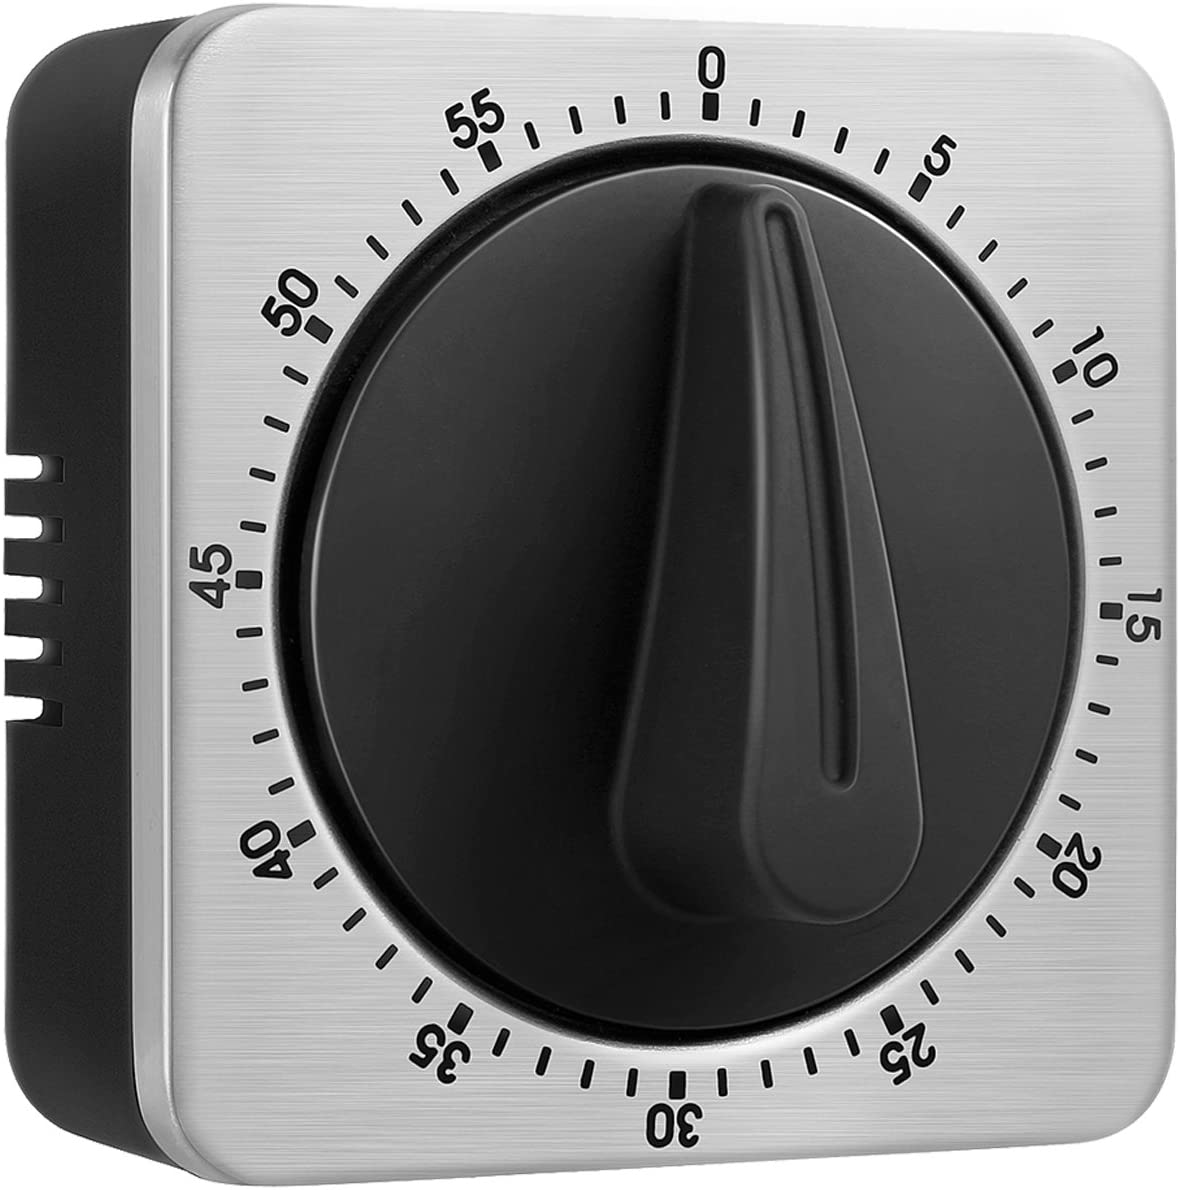 KeeQii Timer Kitchen Timer 60 Minute Timing